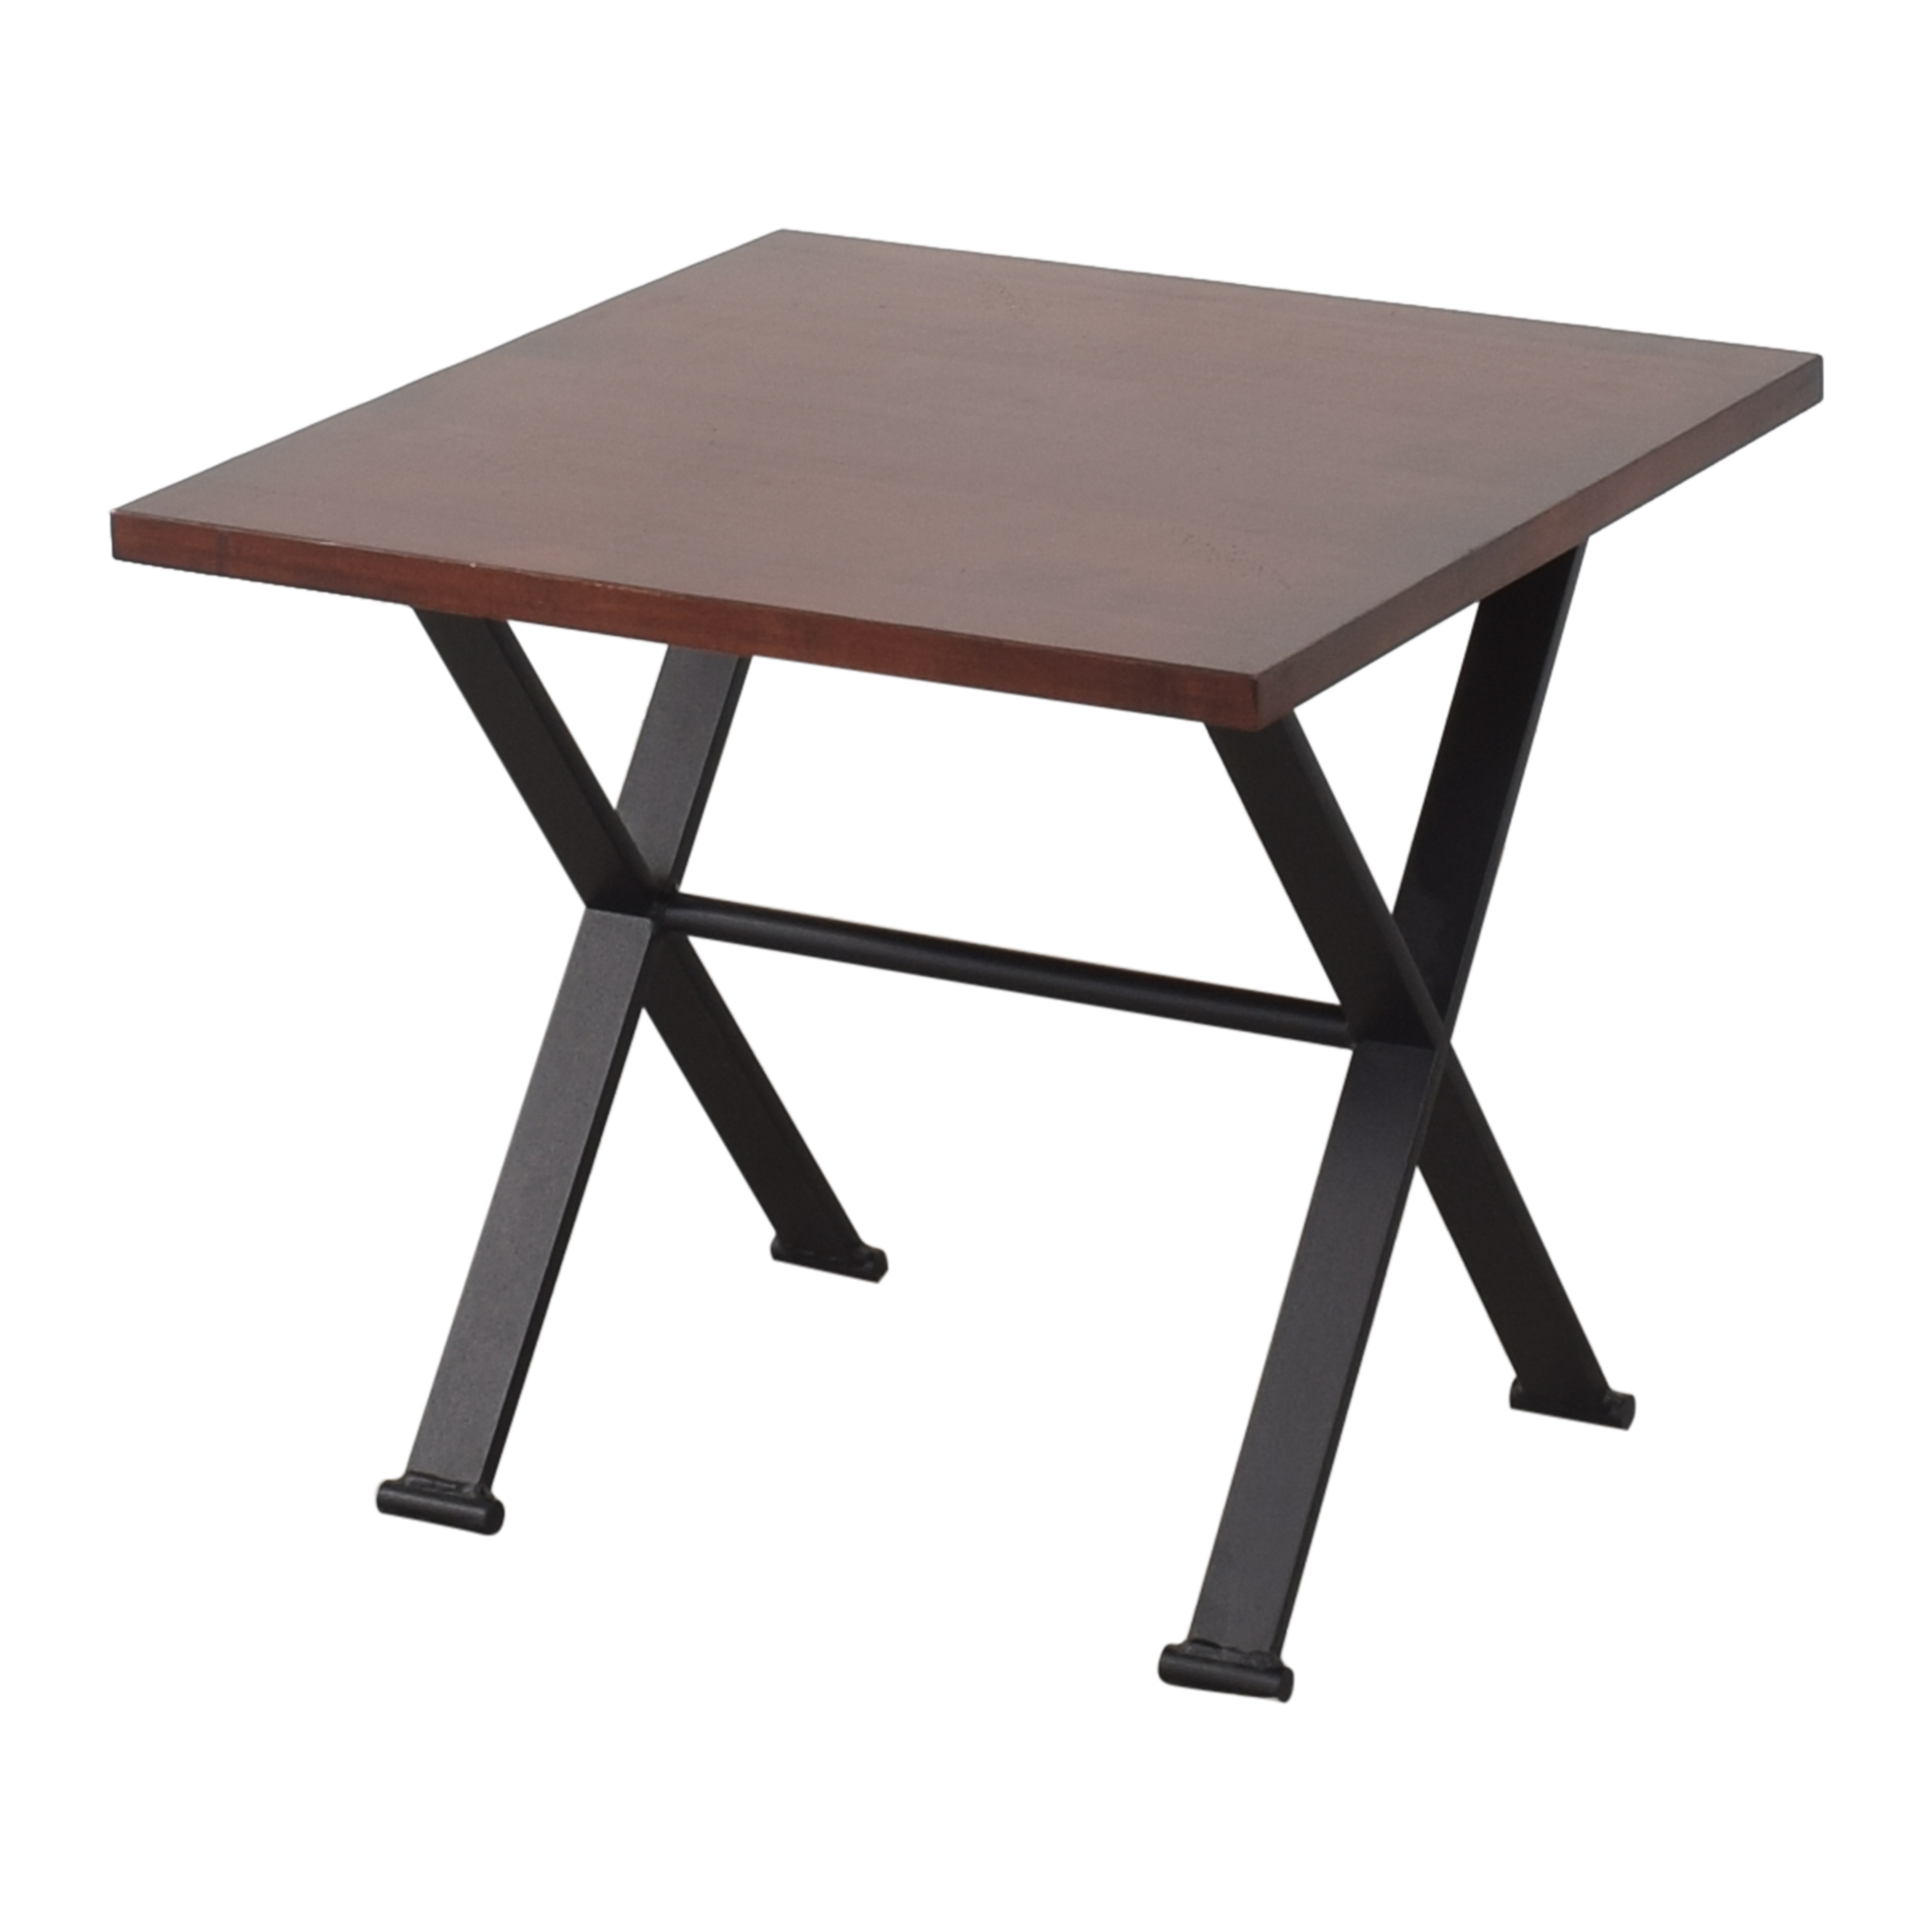 Square End Table brown & black